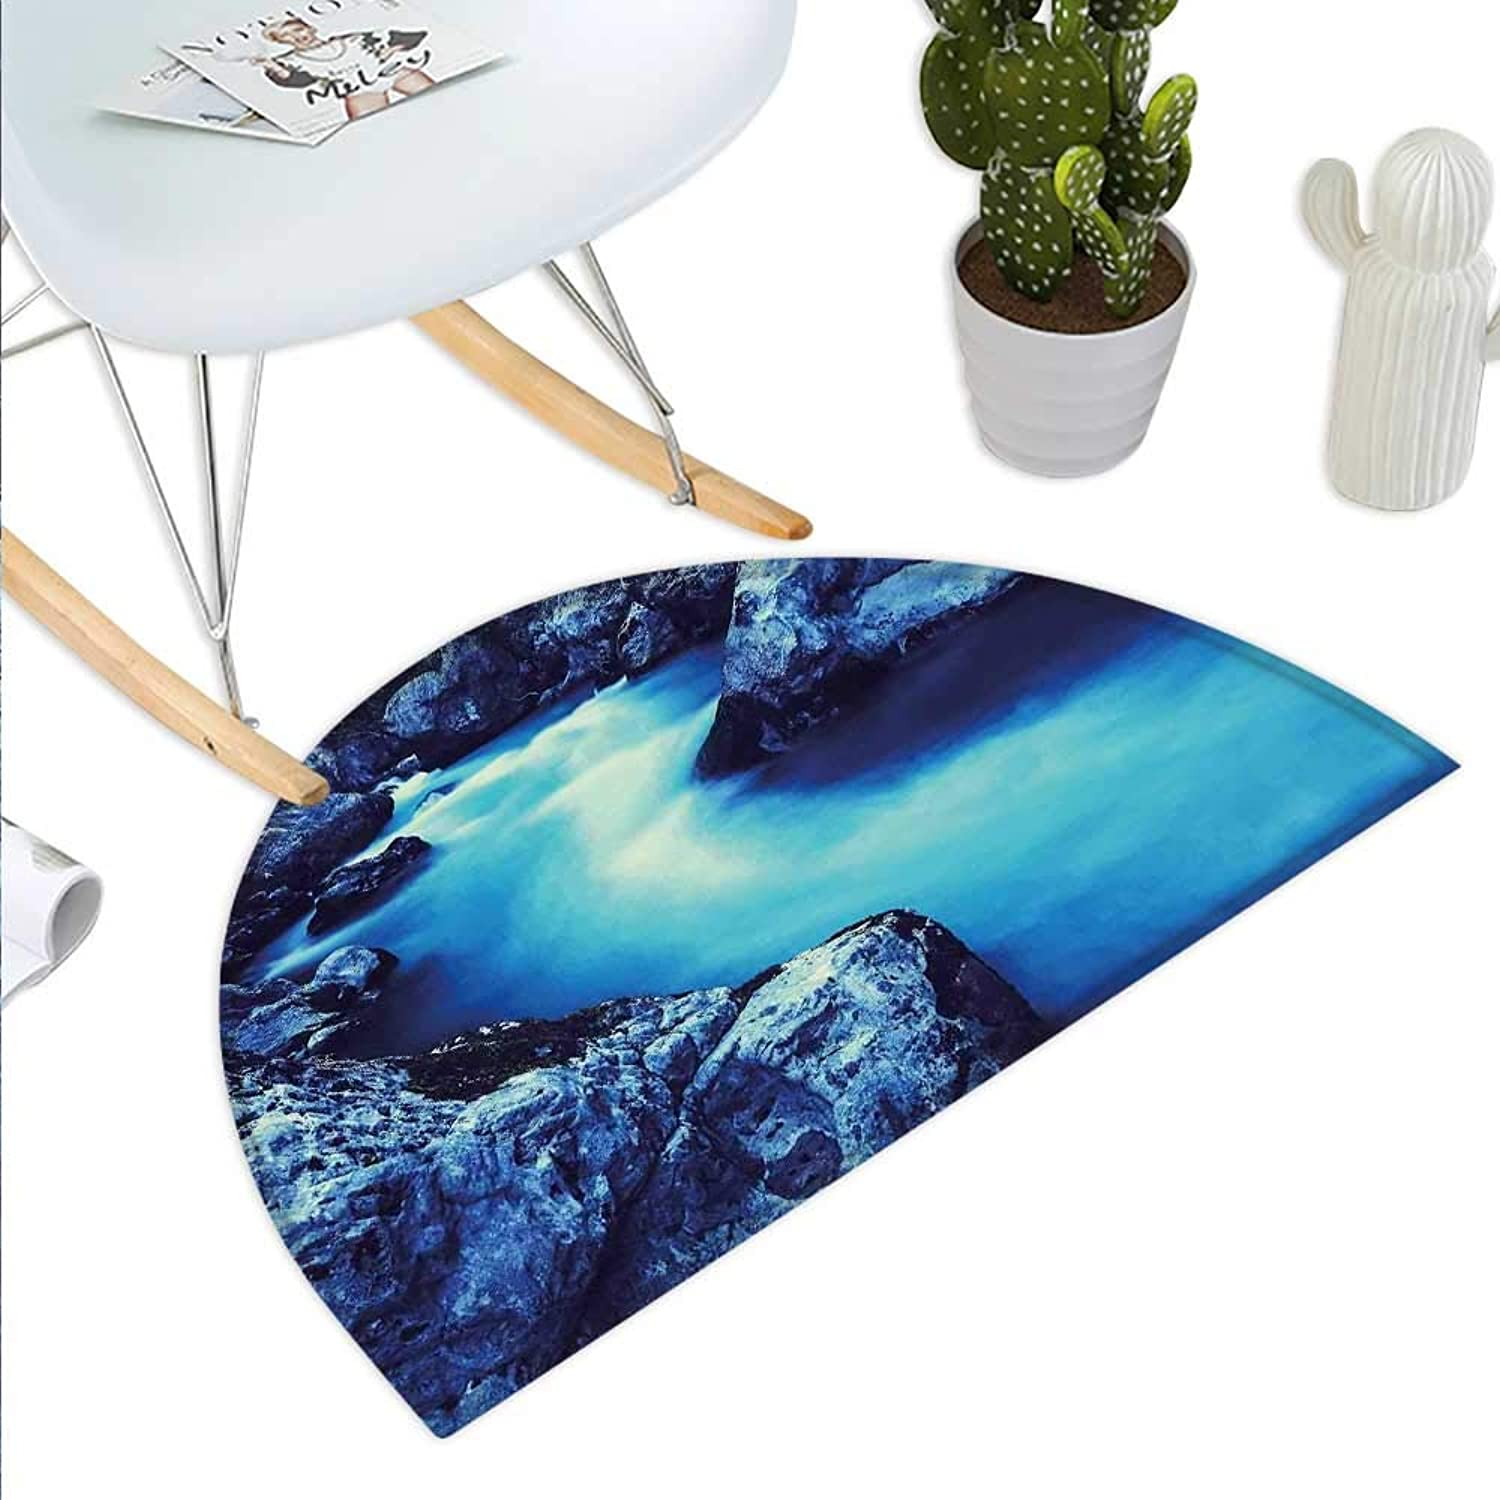 Waterfall Semicircle Doormat Frozen Dangerous Lake with Atmosphere of a Cave and Snow on The Rocks Nature Halfmoon doormats H 47.2  xD 70.8  bluee and Black